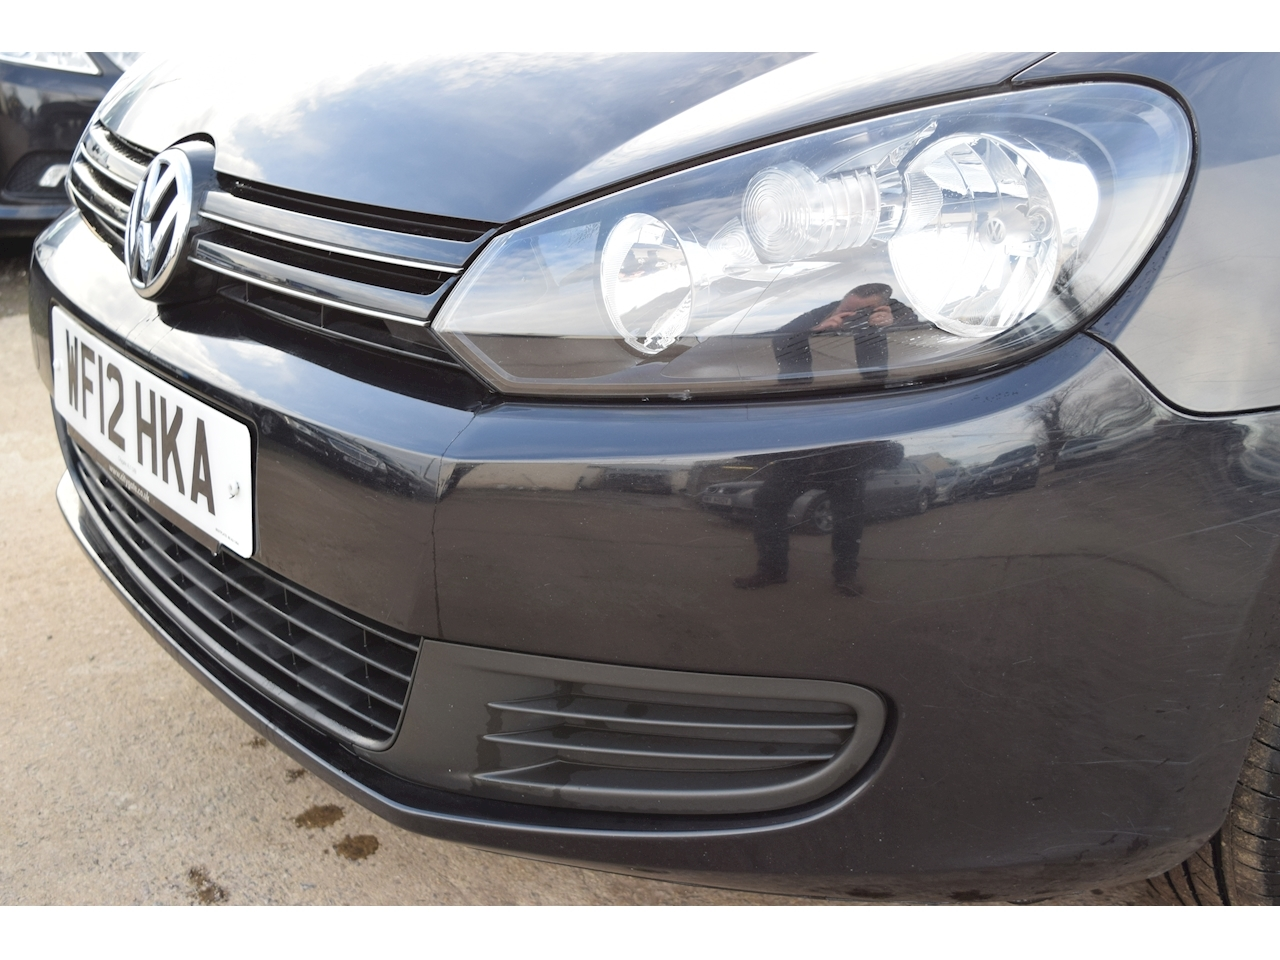 Volkswagen Golf Se Tsi Convertible 1.4 Manual Petrol